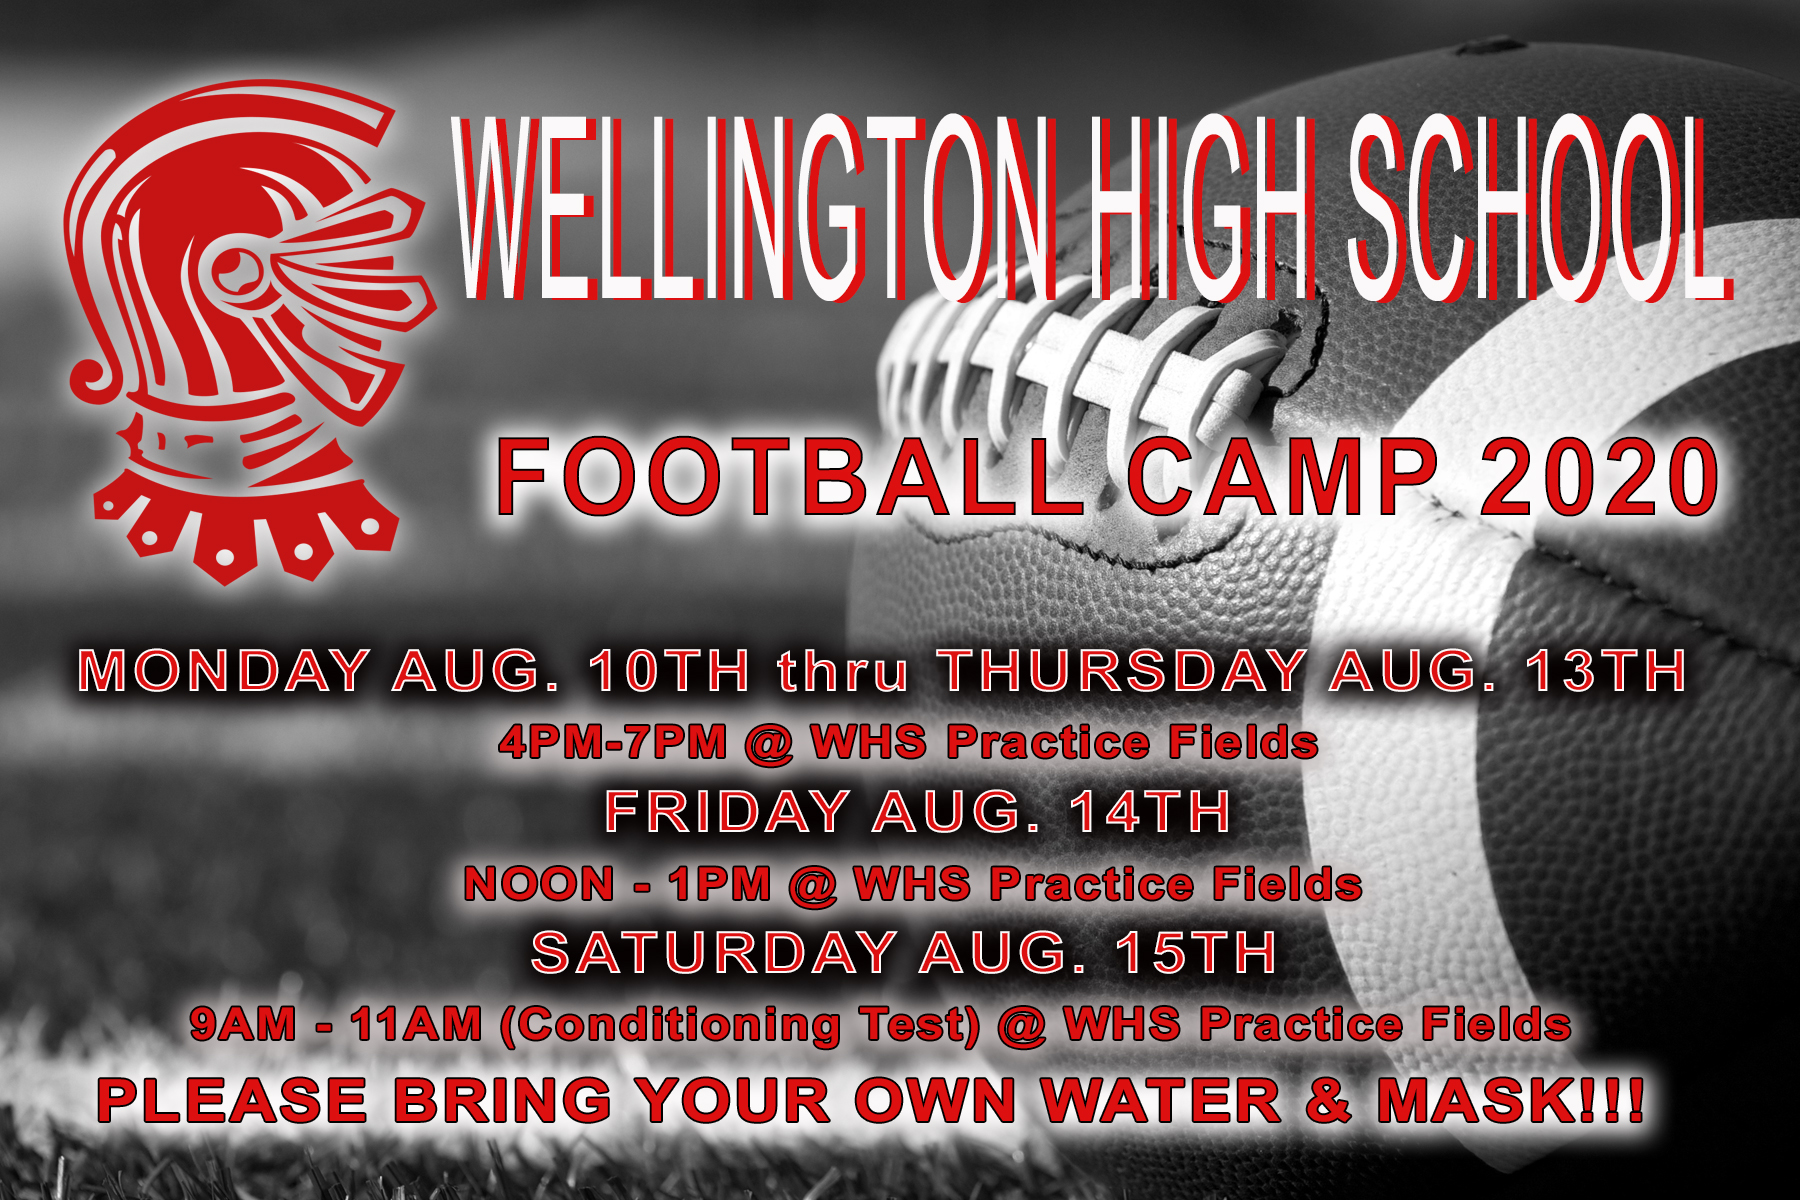 WHS Football Camp 2020 Promo